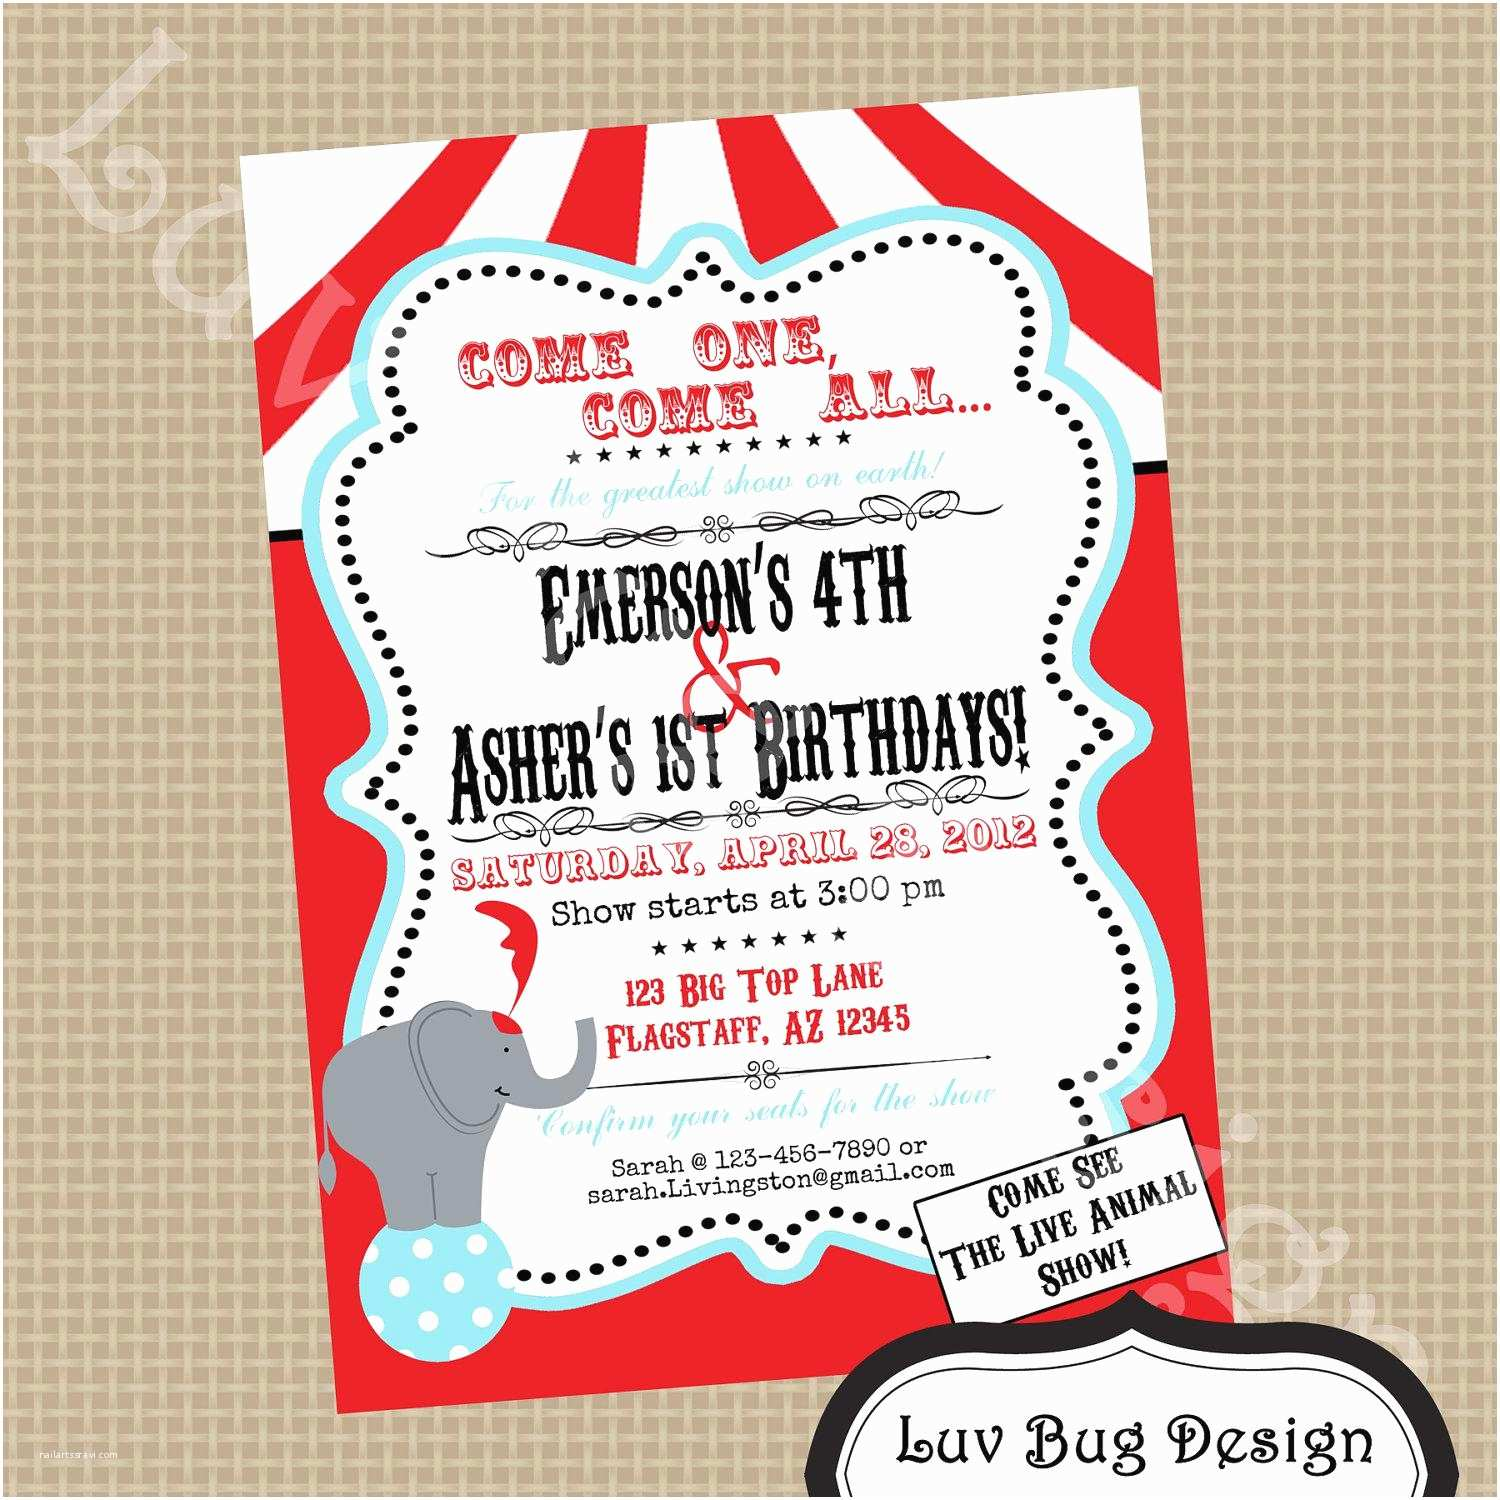 Carnival Party Invitations Carnival Party Invitations Free